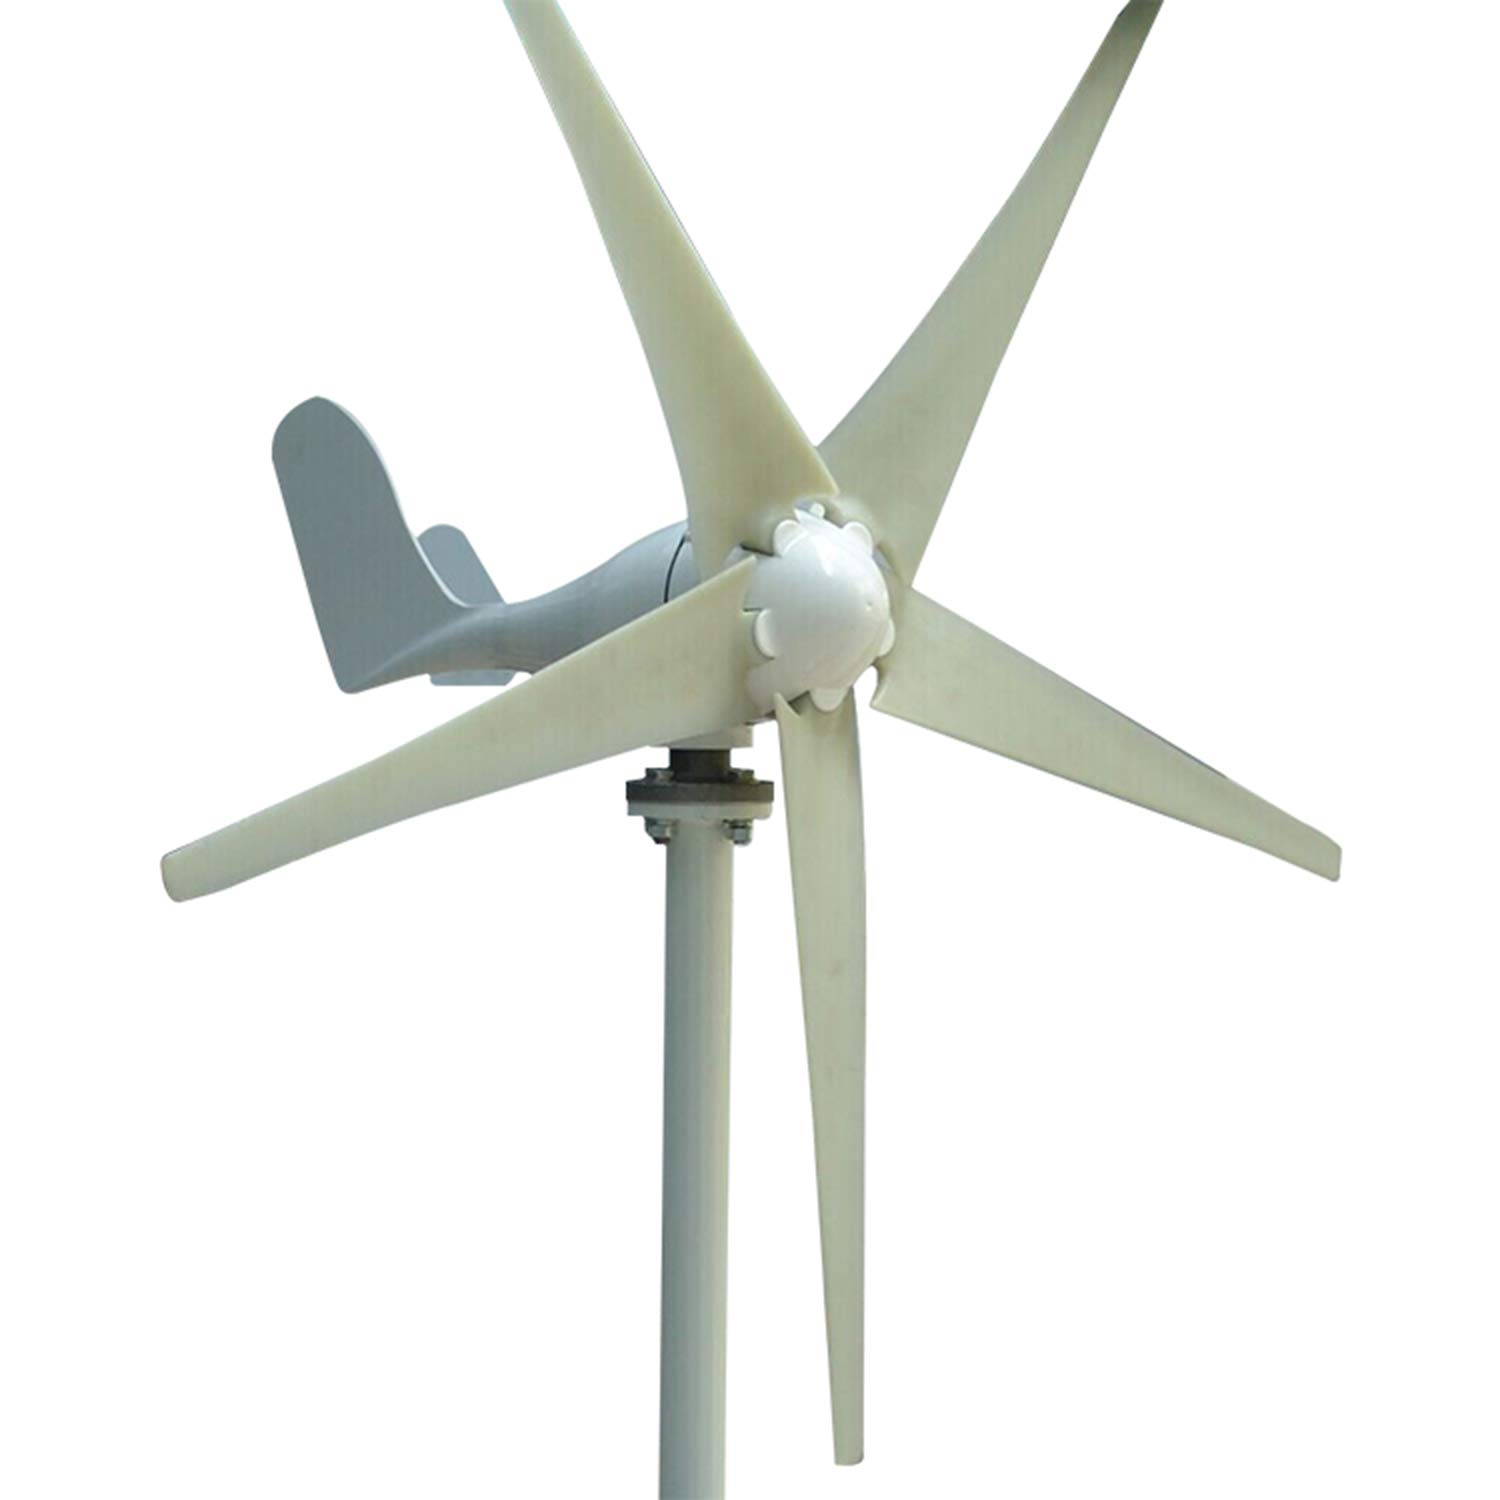 AMPM24US-US DC 24V 400W 5 Blades Wind Turbine Generator Windmill Kit for Homes Businesses Industrial Energy Supplementation